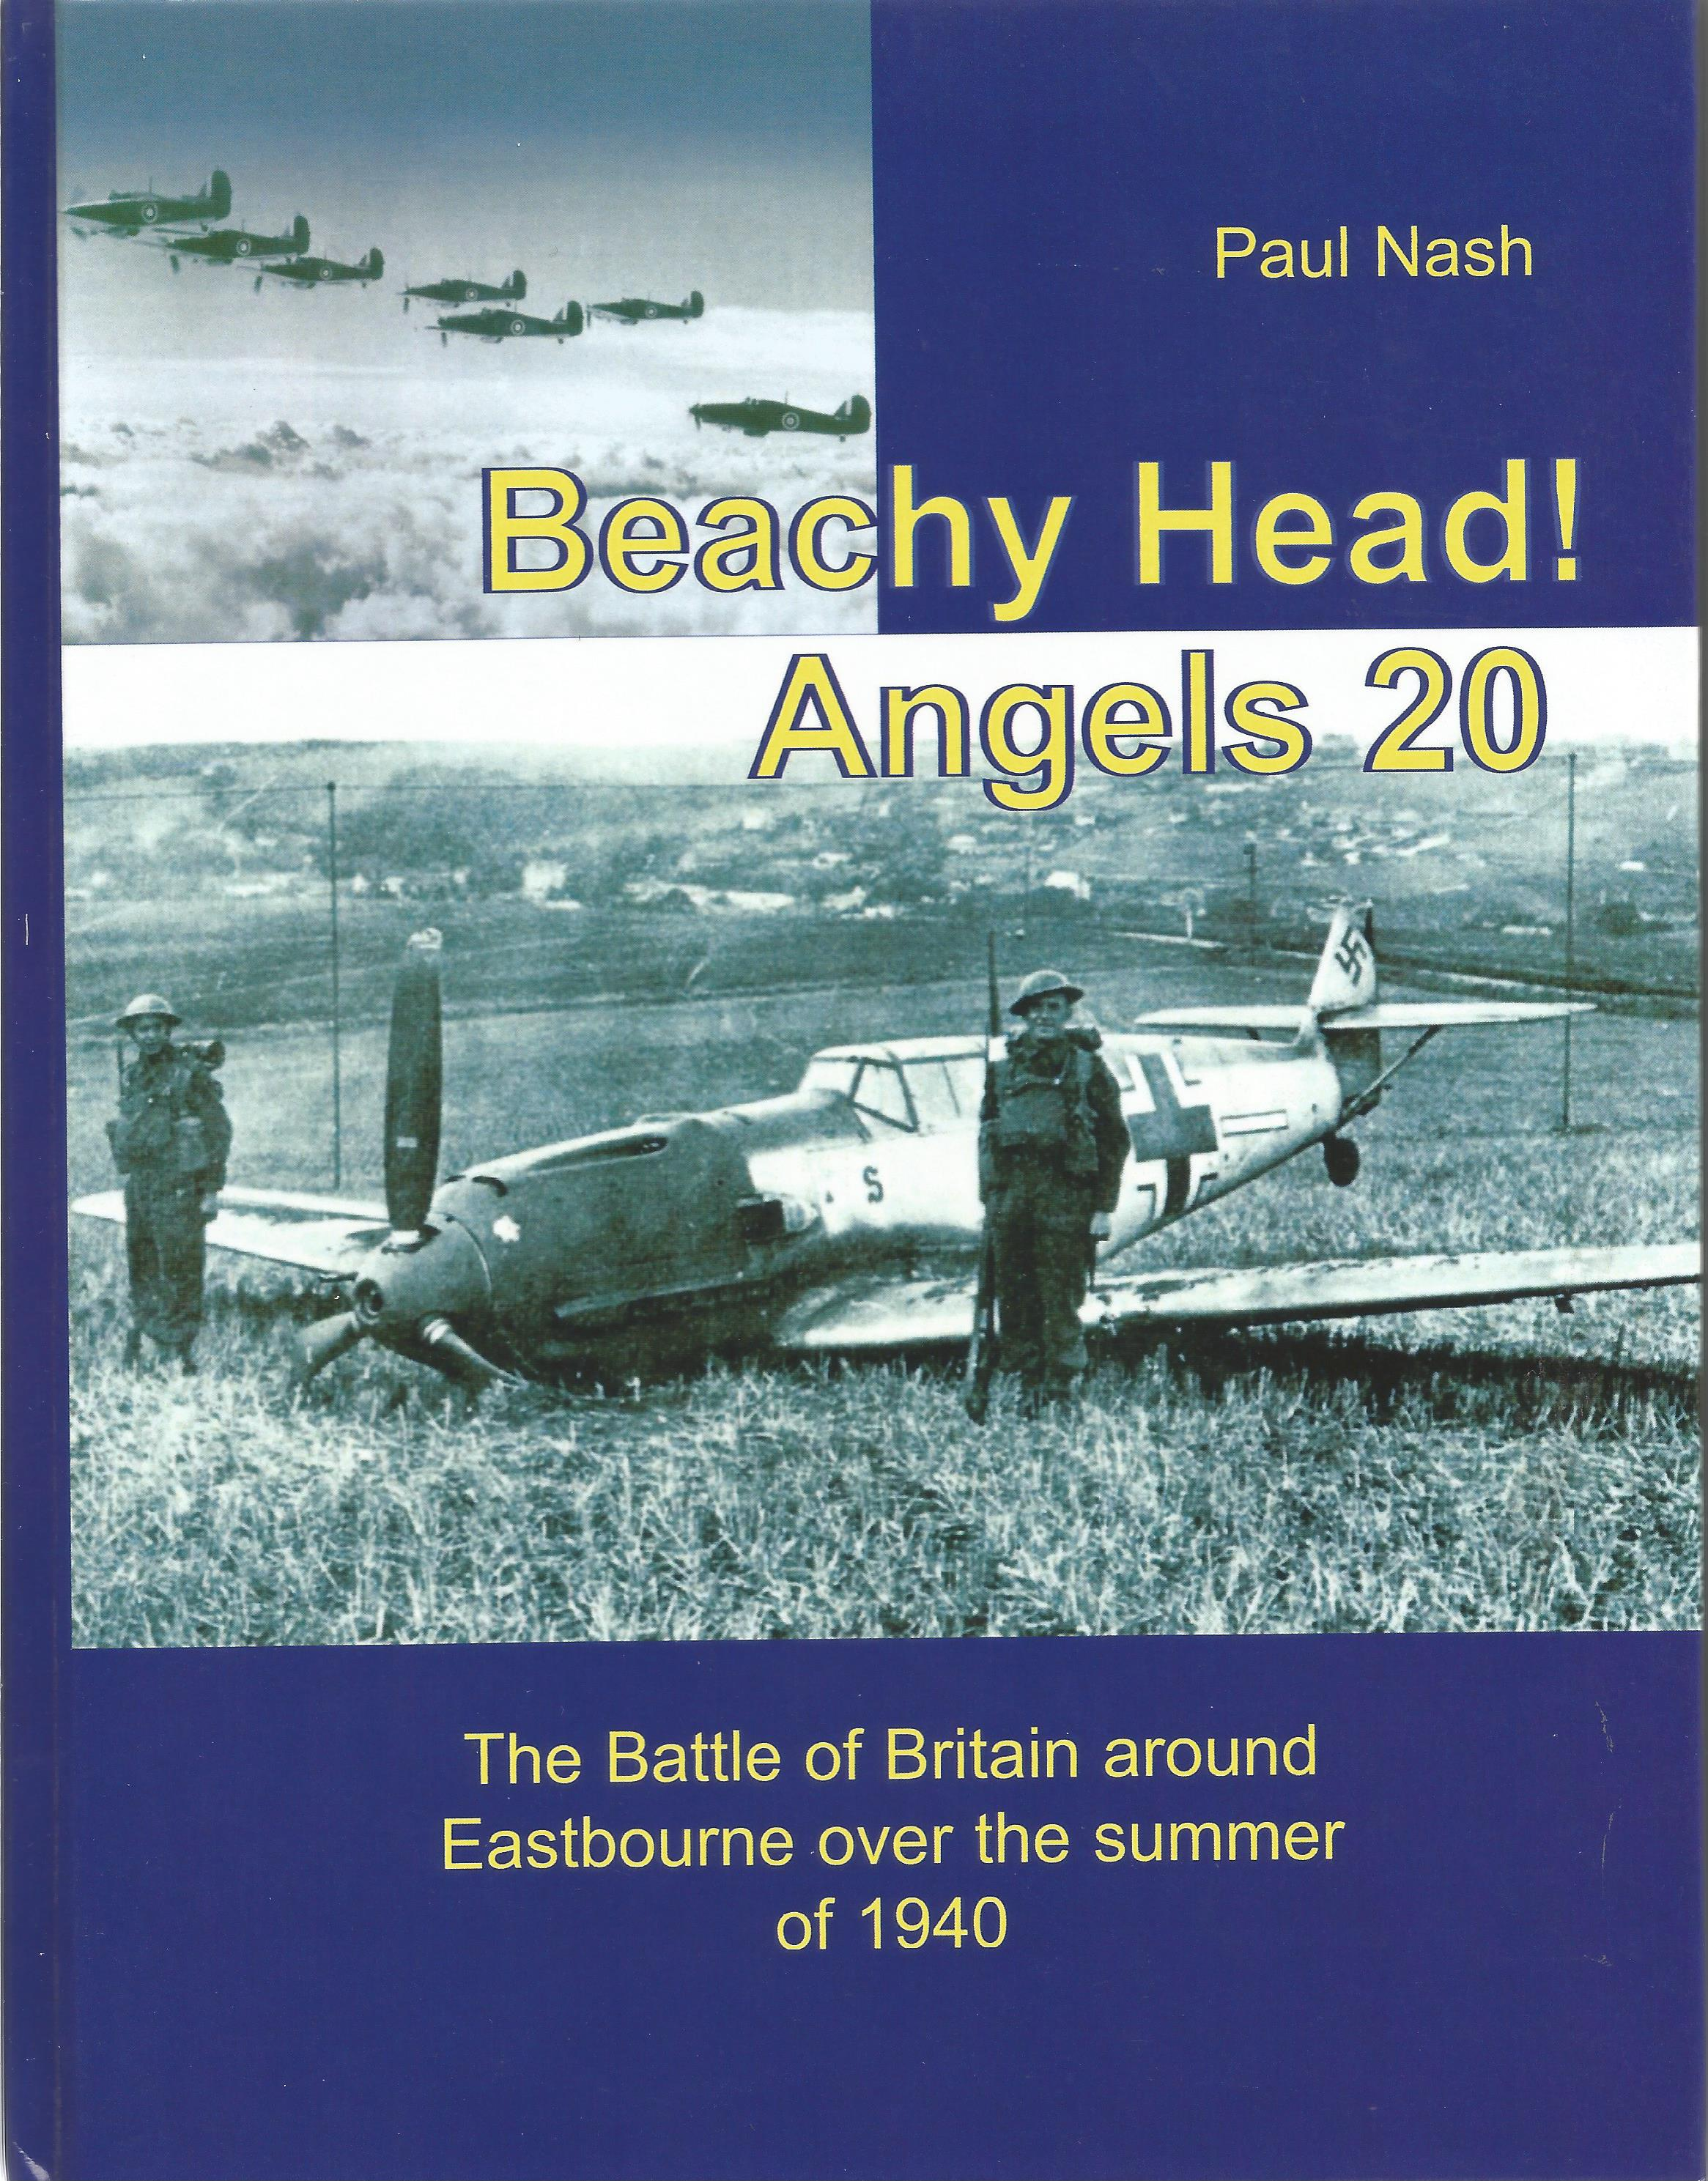 Paul Nash. Beachy Head! Angels 20 the Battle Of Britain around Eastbourne over the summer of 1940. a